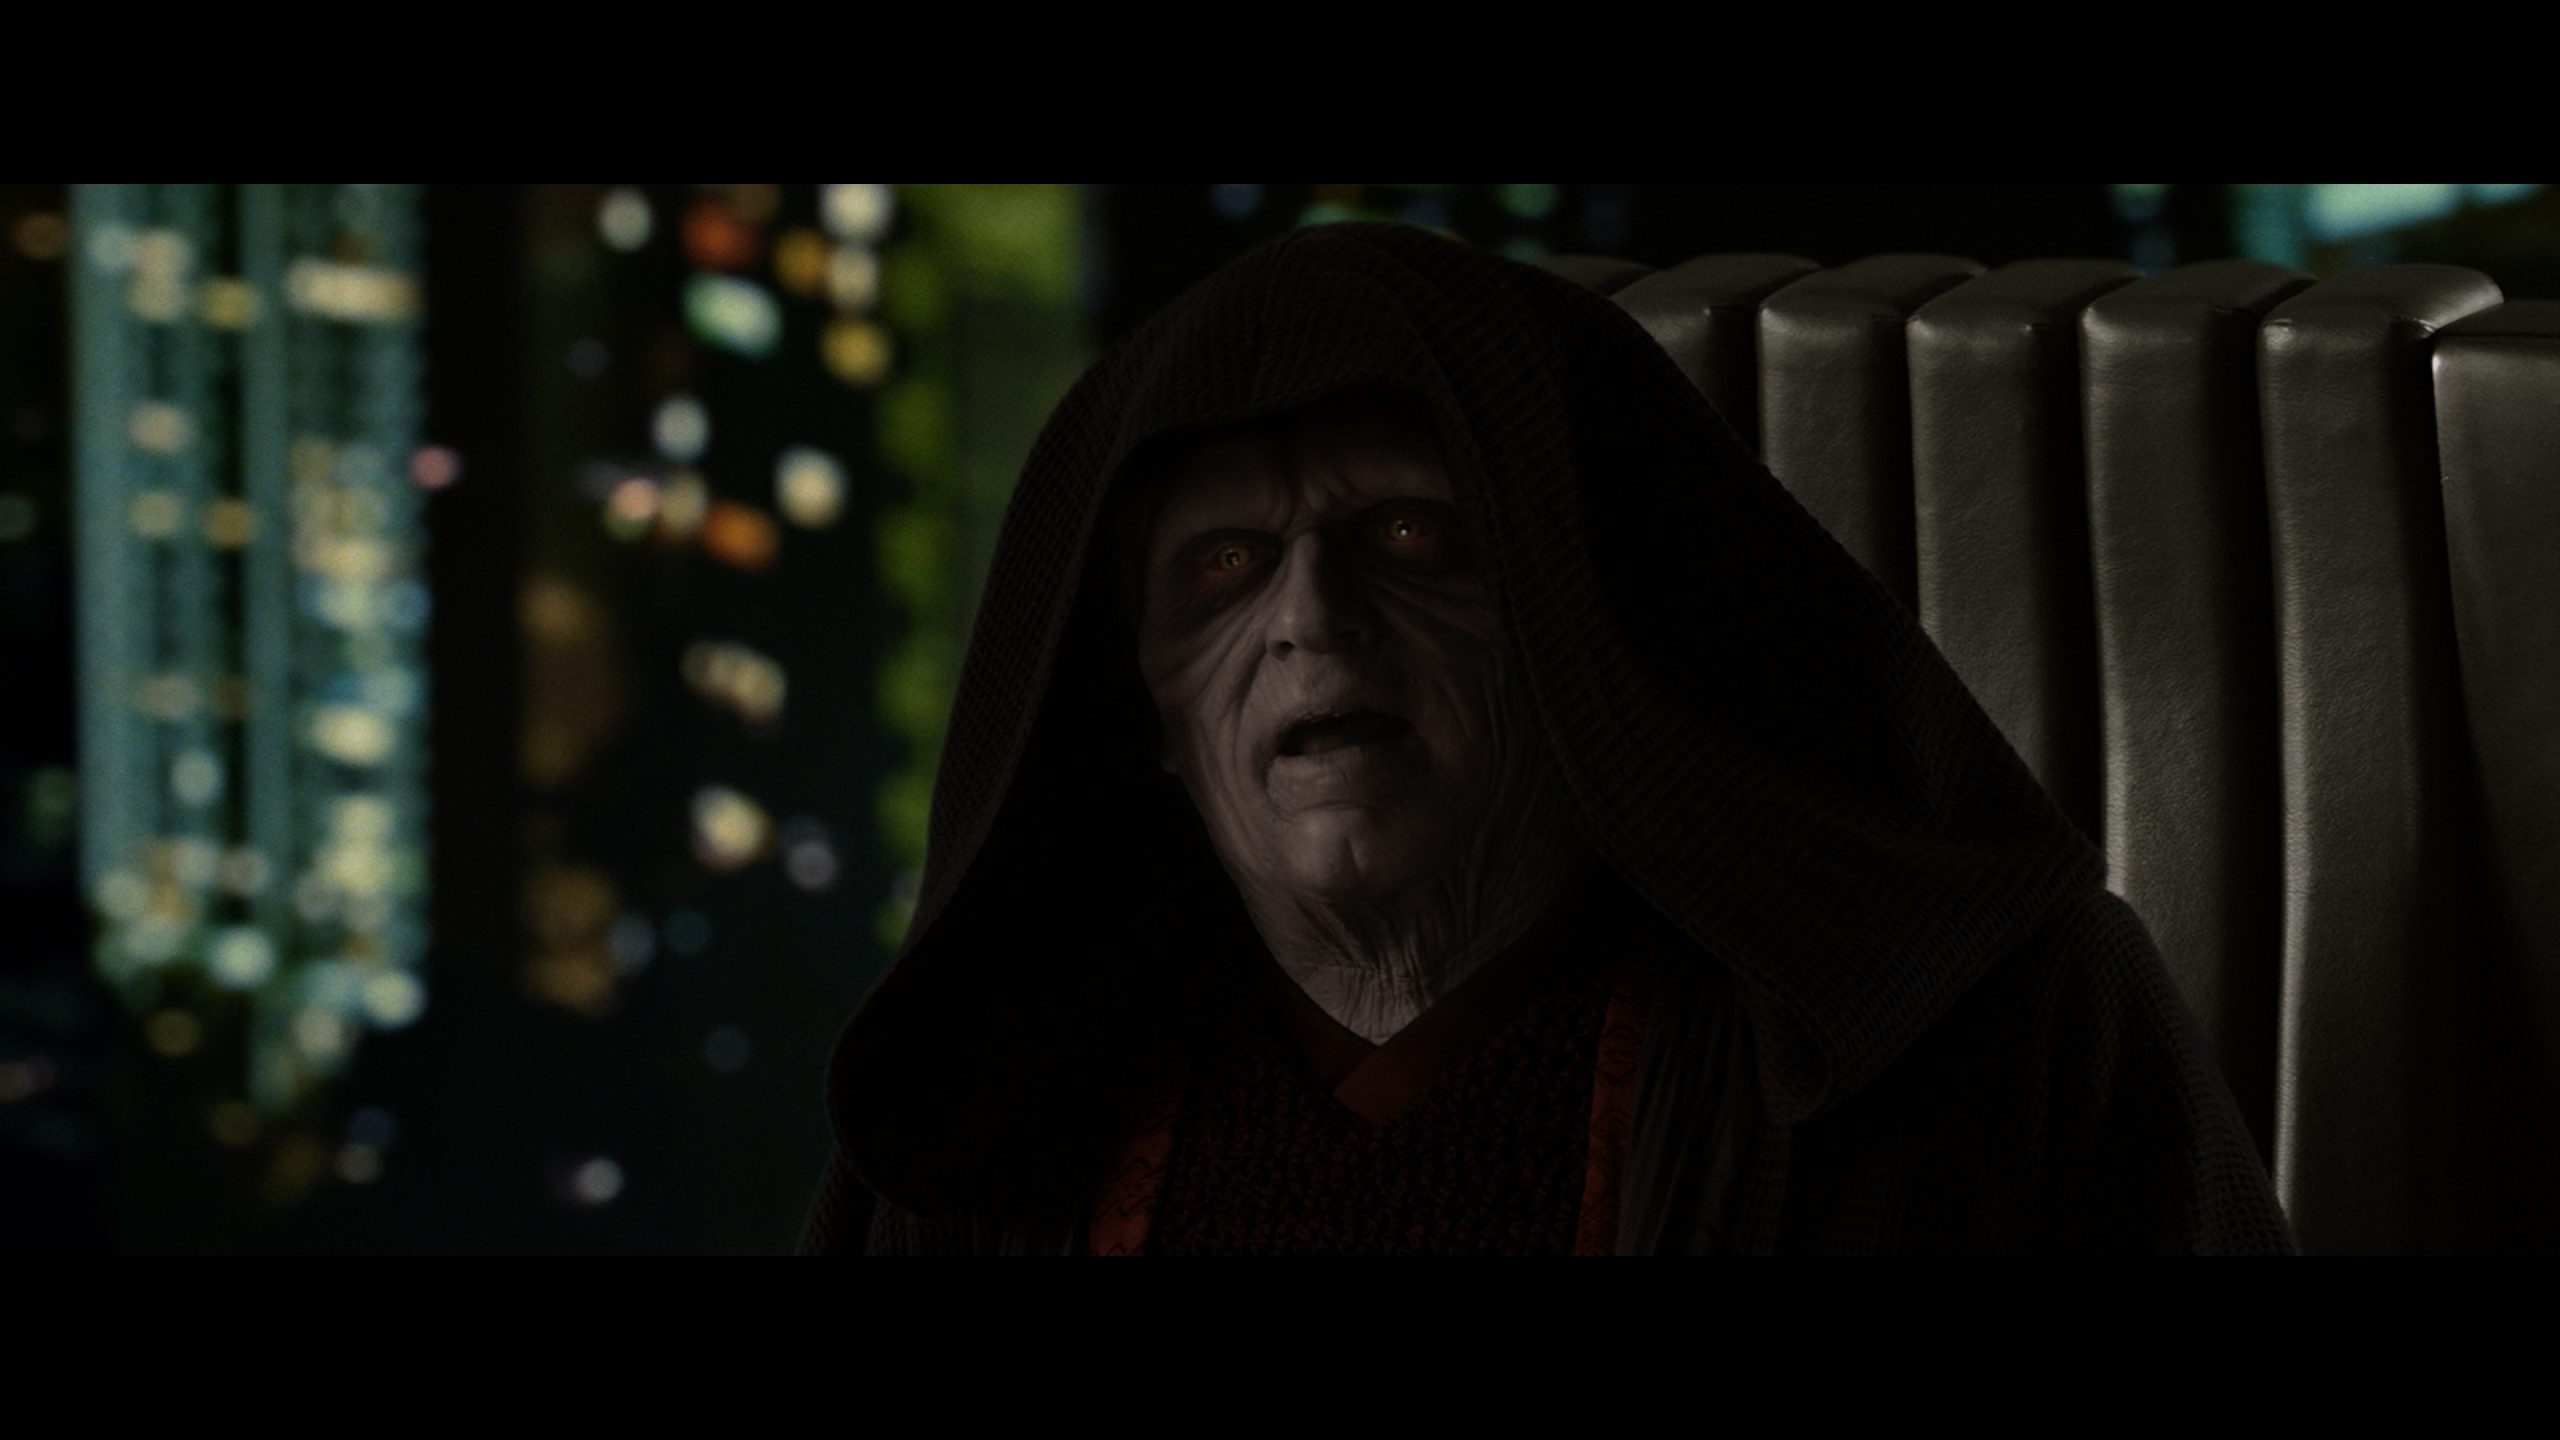 Star Wars Episode Iii Revenge Of The Sith 4k Uhd Review